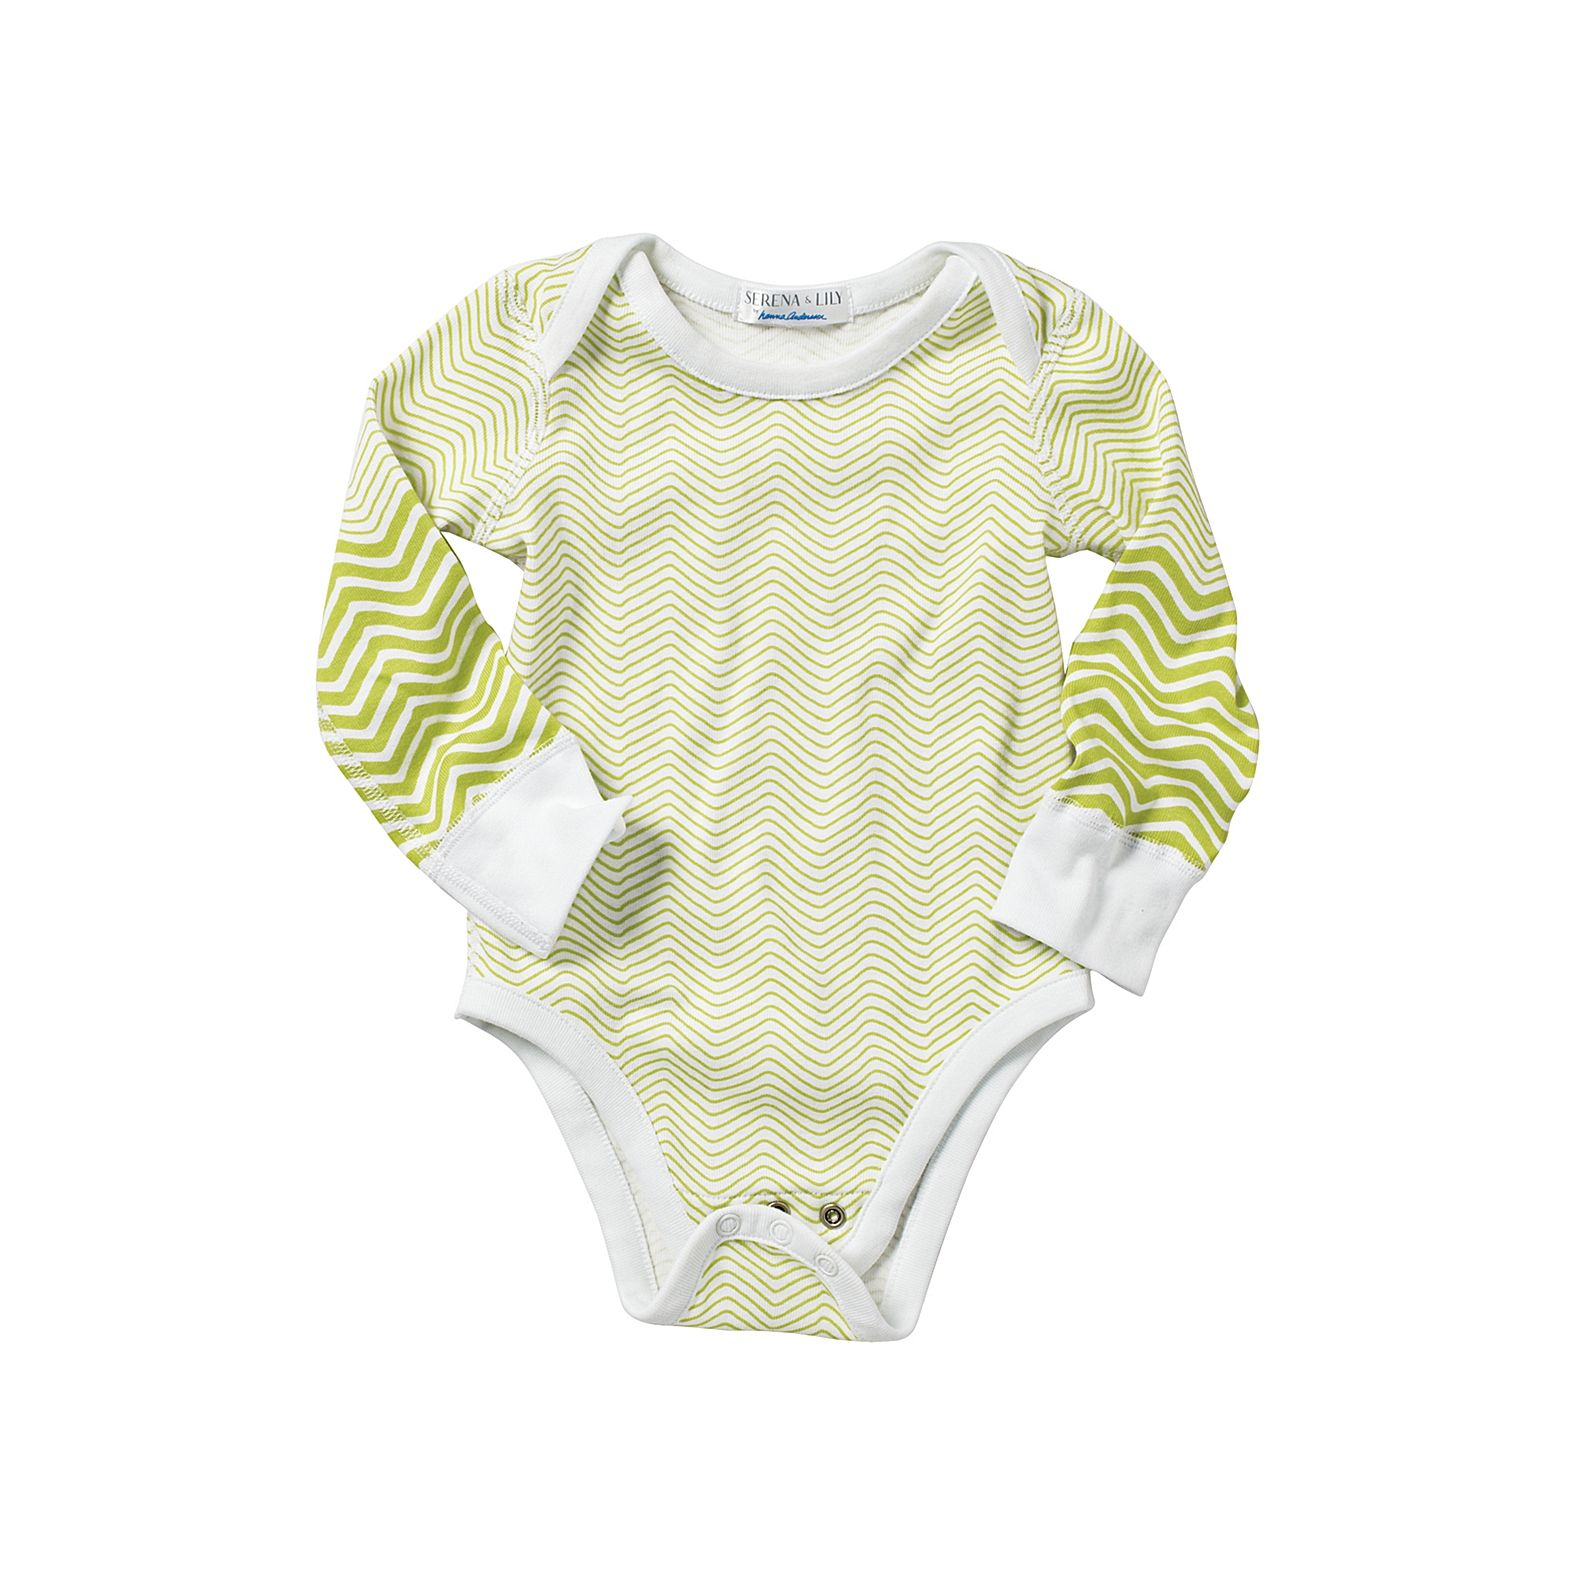 Hanna Andersson Chevron Bodysuit Sprout - Serena & Lily